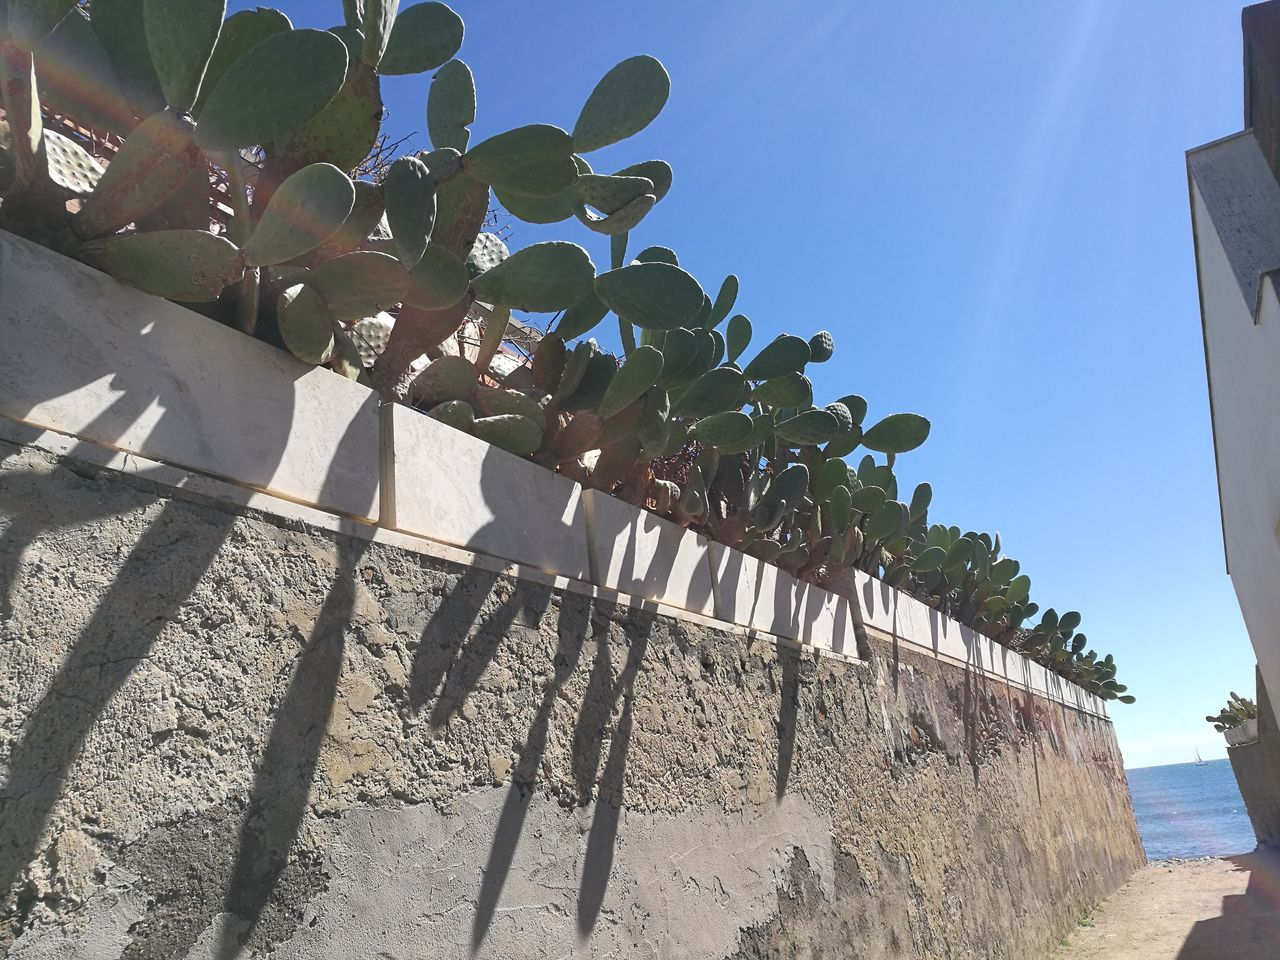 Blu Sky Clear Sky Day Low Angle View Nature No People Outdoors Sea Small Path Sunlight Sunny Day Wall Wall With Cactus